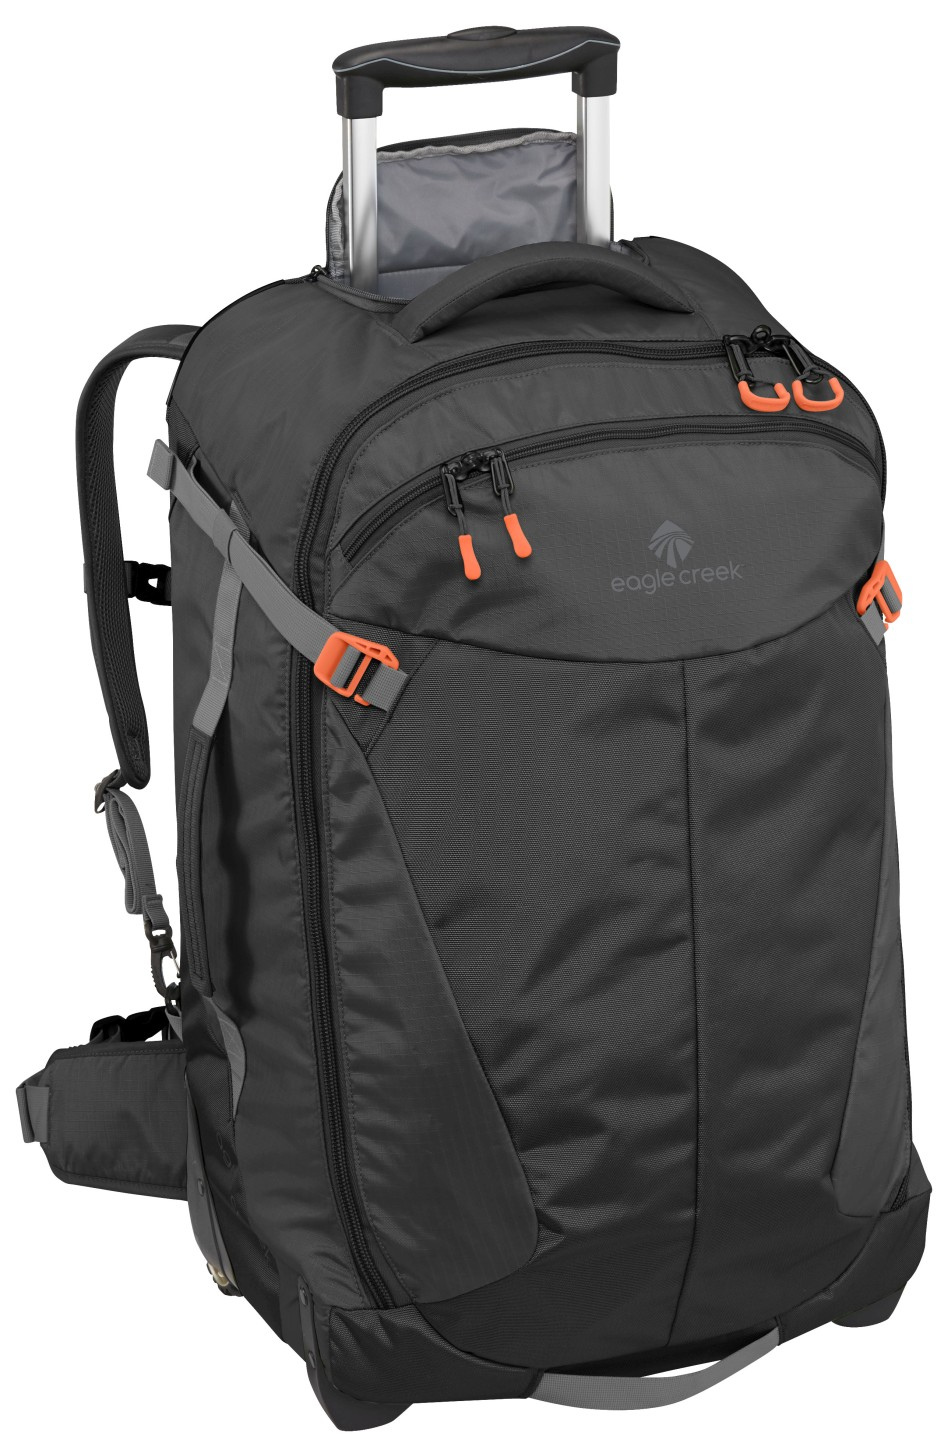 Eagle Creek Actify Wheeled Backpack 26 black-30